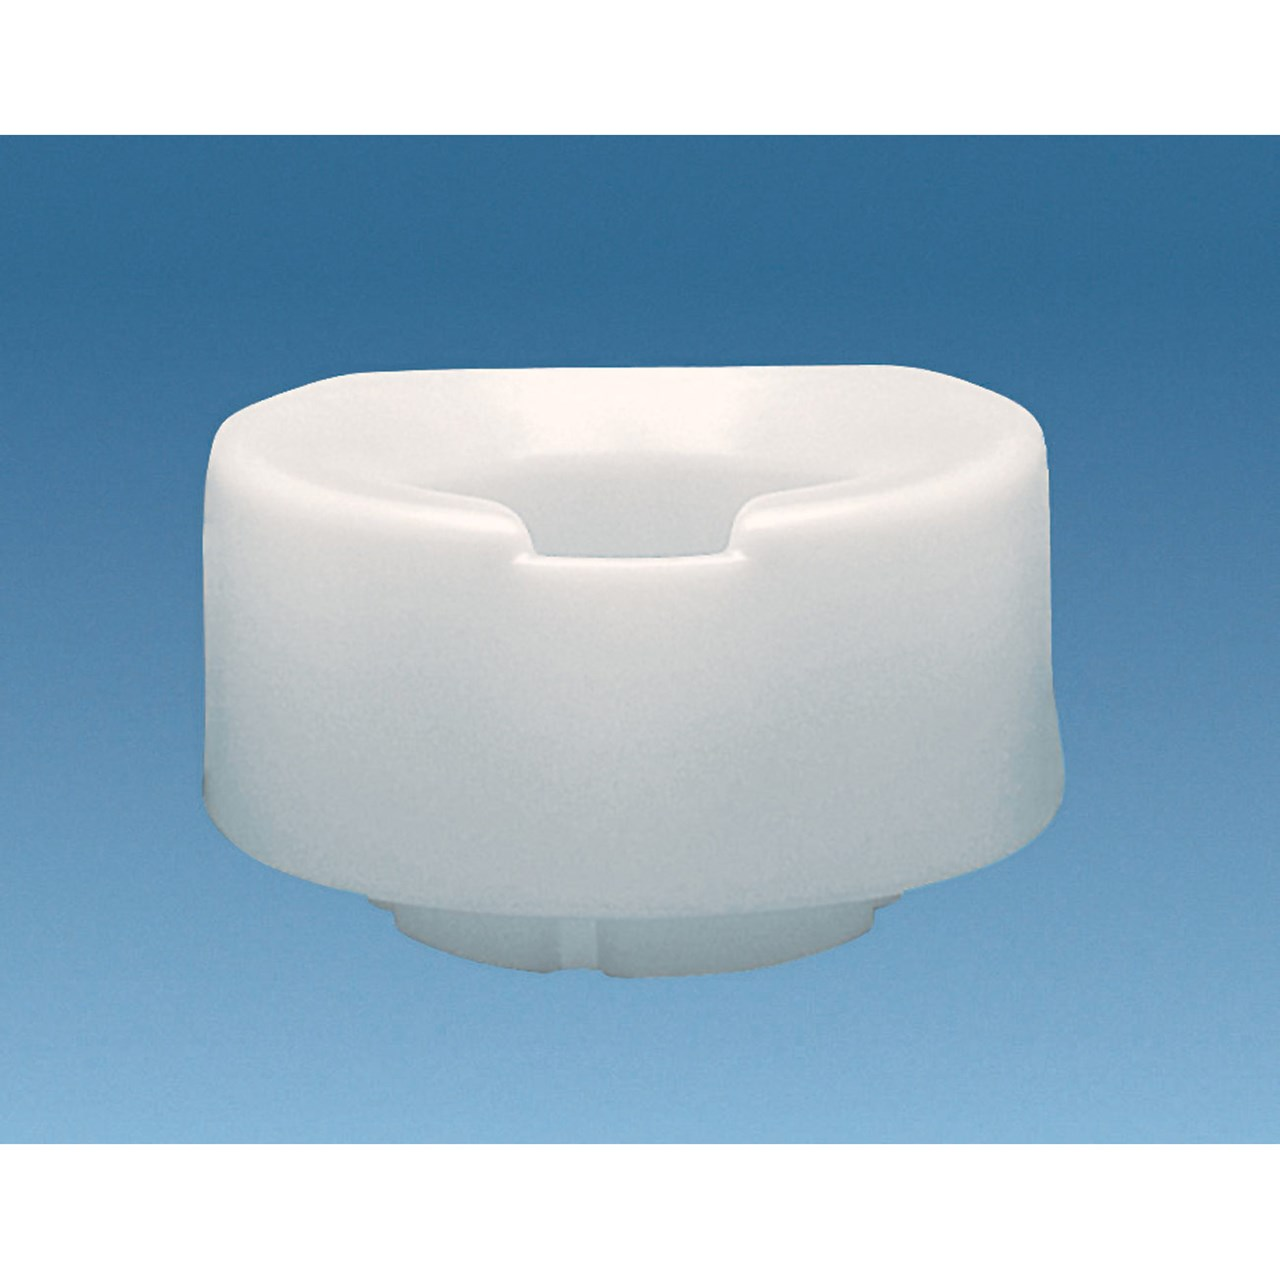 Maxiaids Tall Ette Contoured Raised Toilet Seat 6 In Elong